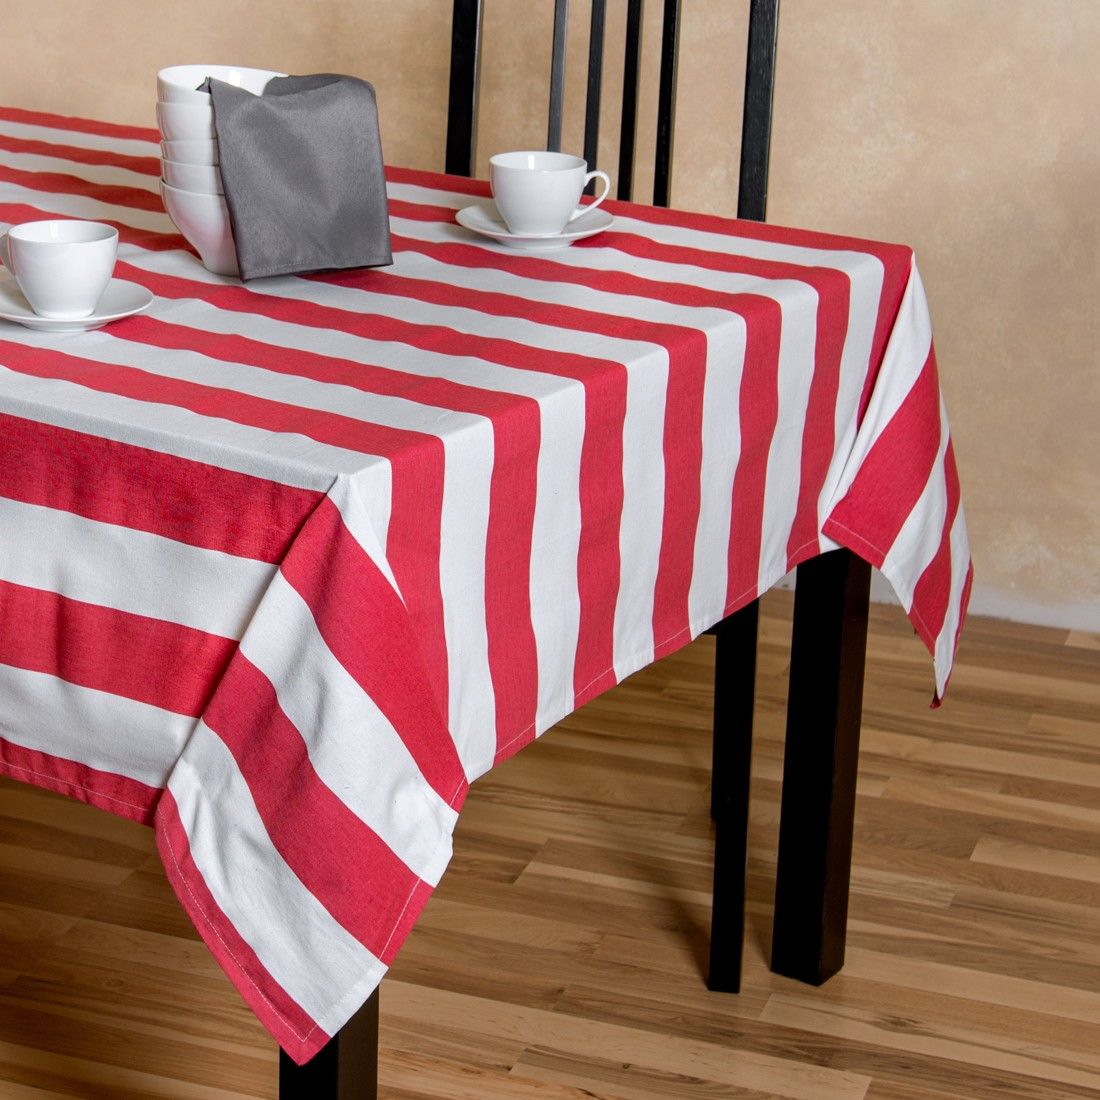 Buy Striped Cotton Tablecloths At Linentablecloth. The Laid Back Style Of  Our Red U0026 White Stripes Dining Collection Is Reminiscent Of A Day At The  Beach.